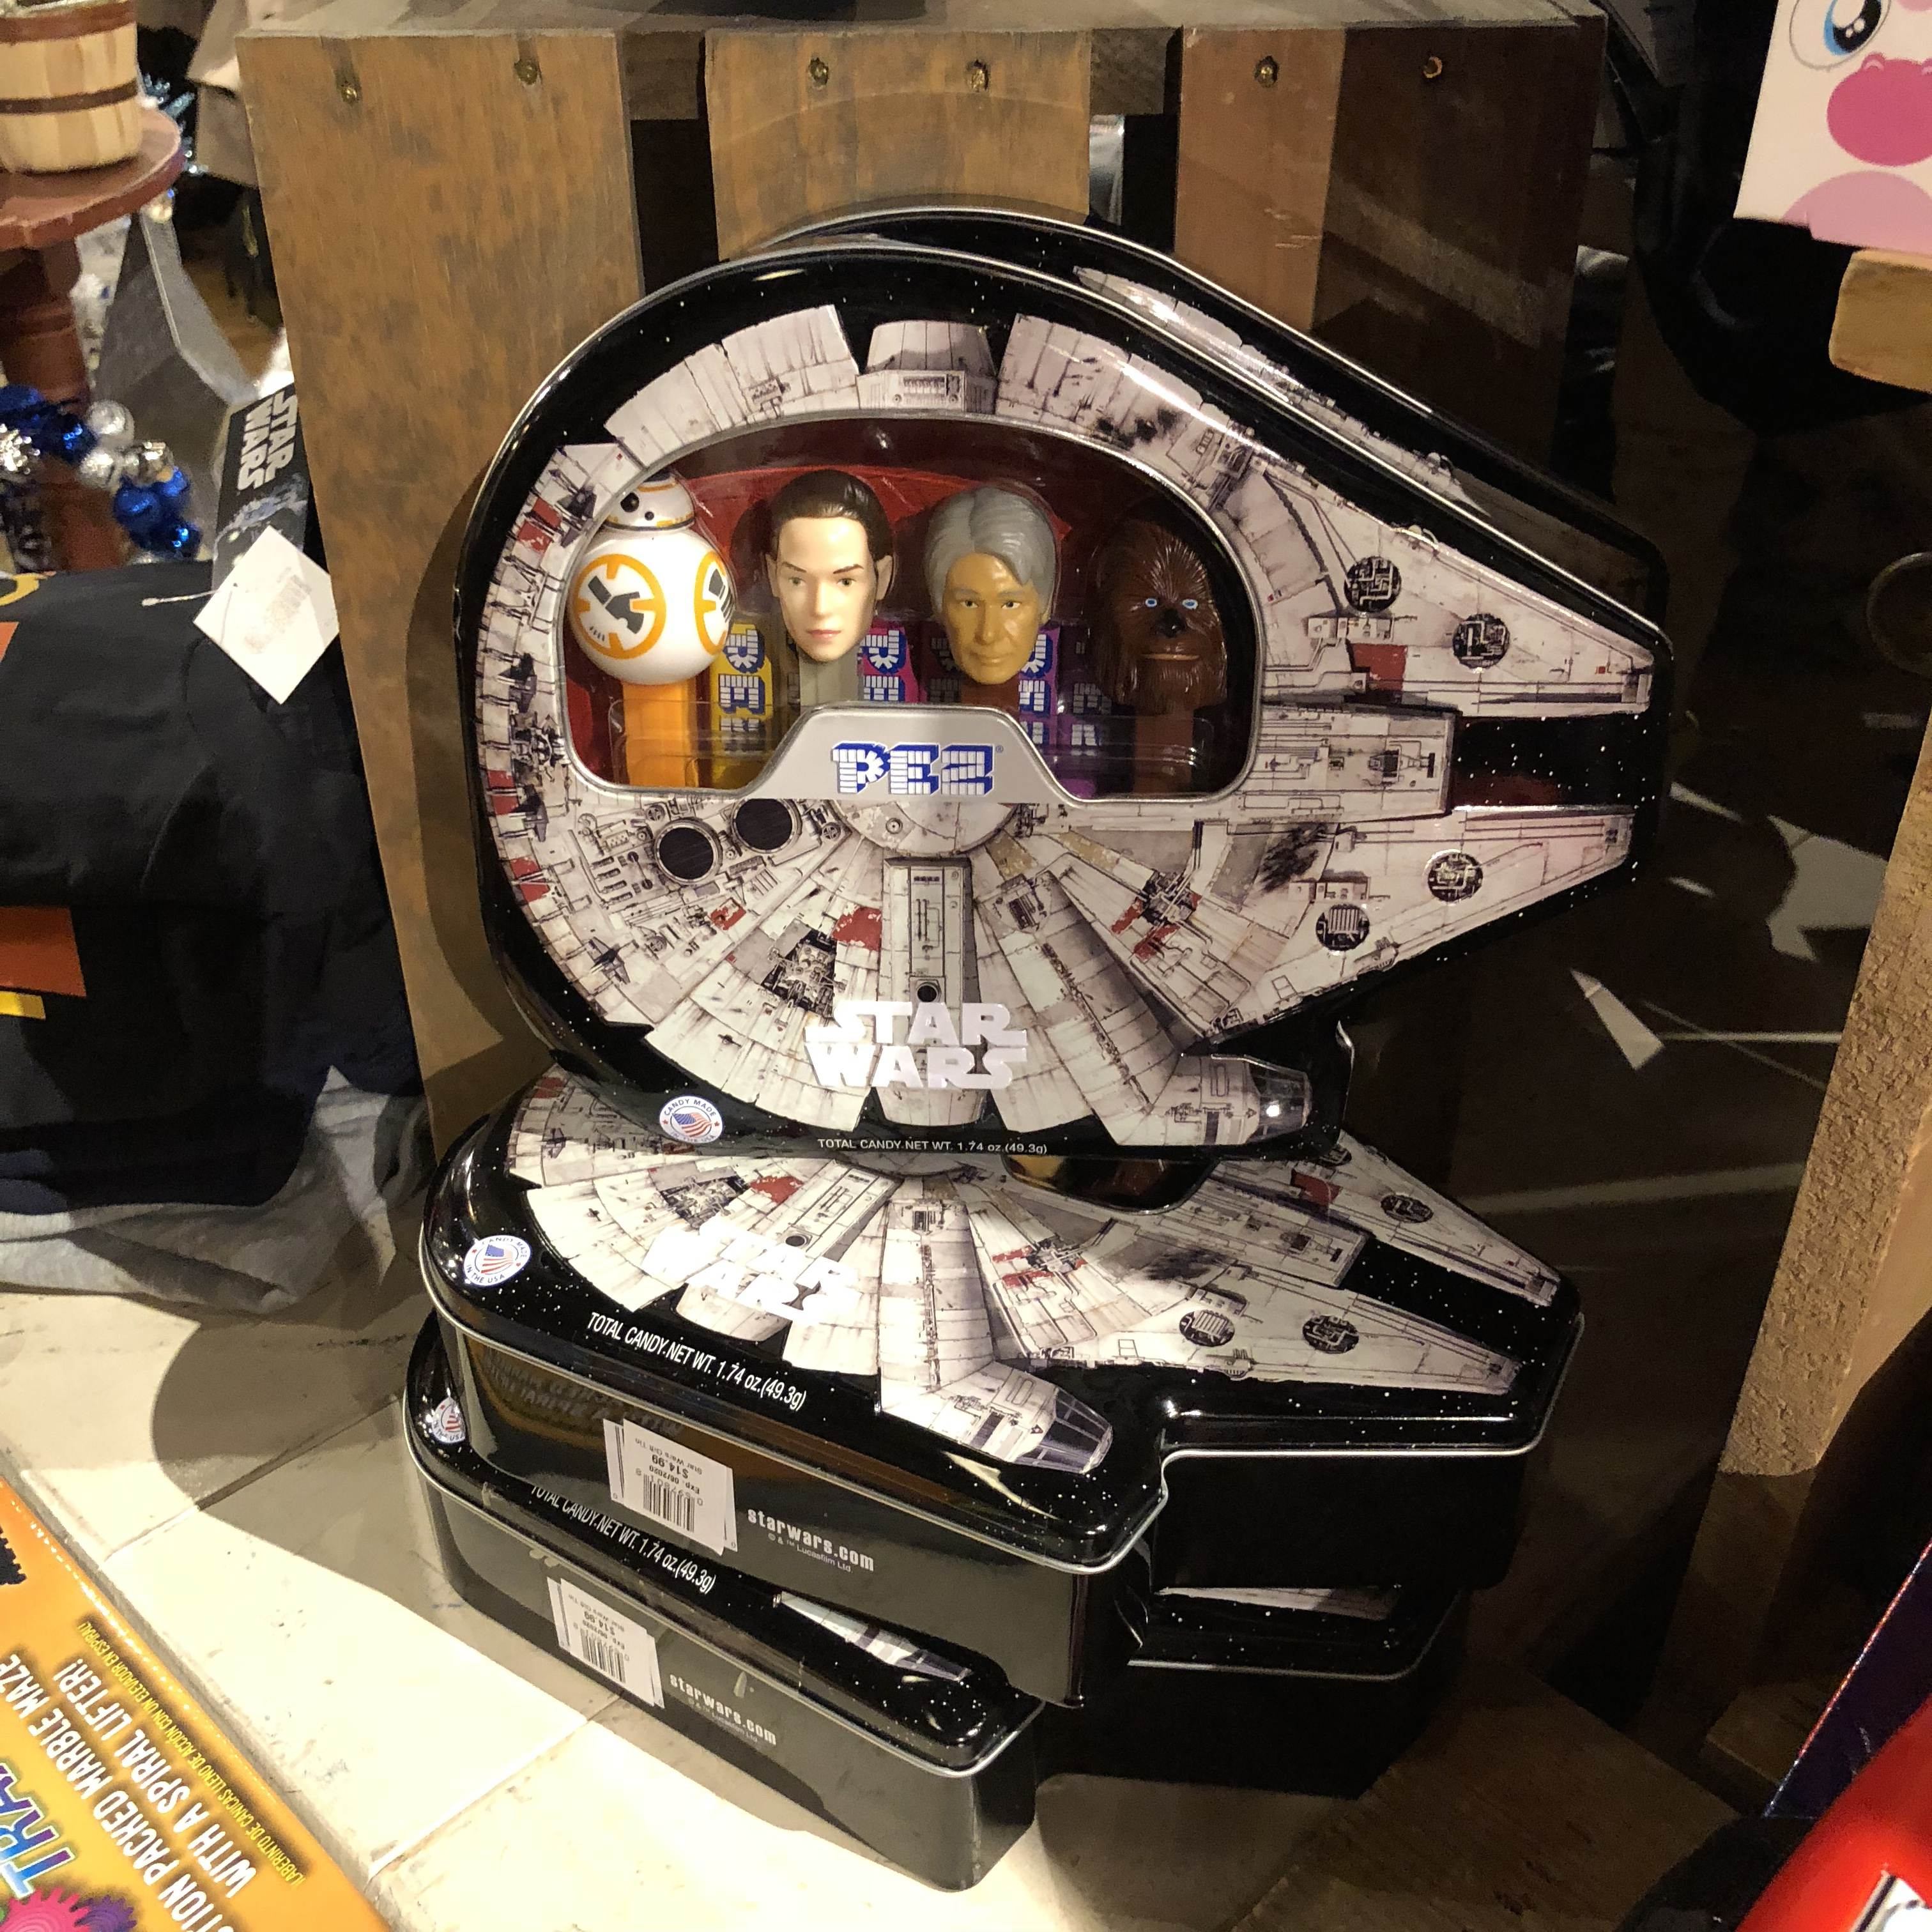 Surprising holiday gifts at Cracker Barrel: Star Wars Pez | sponsor